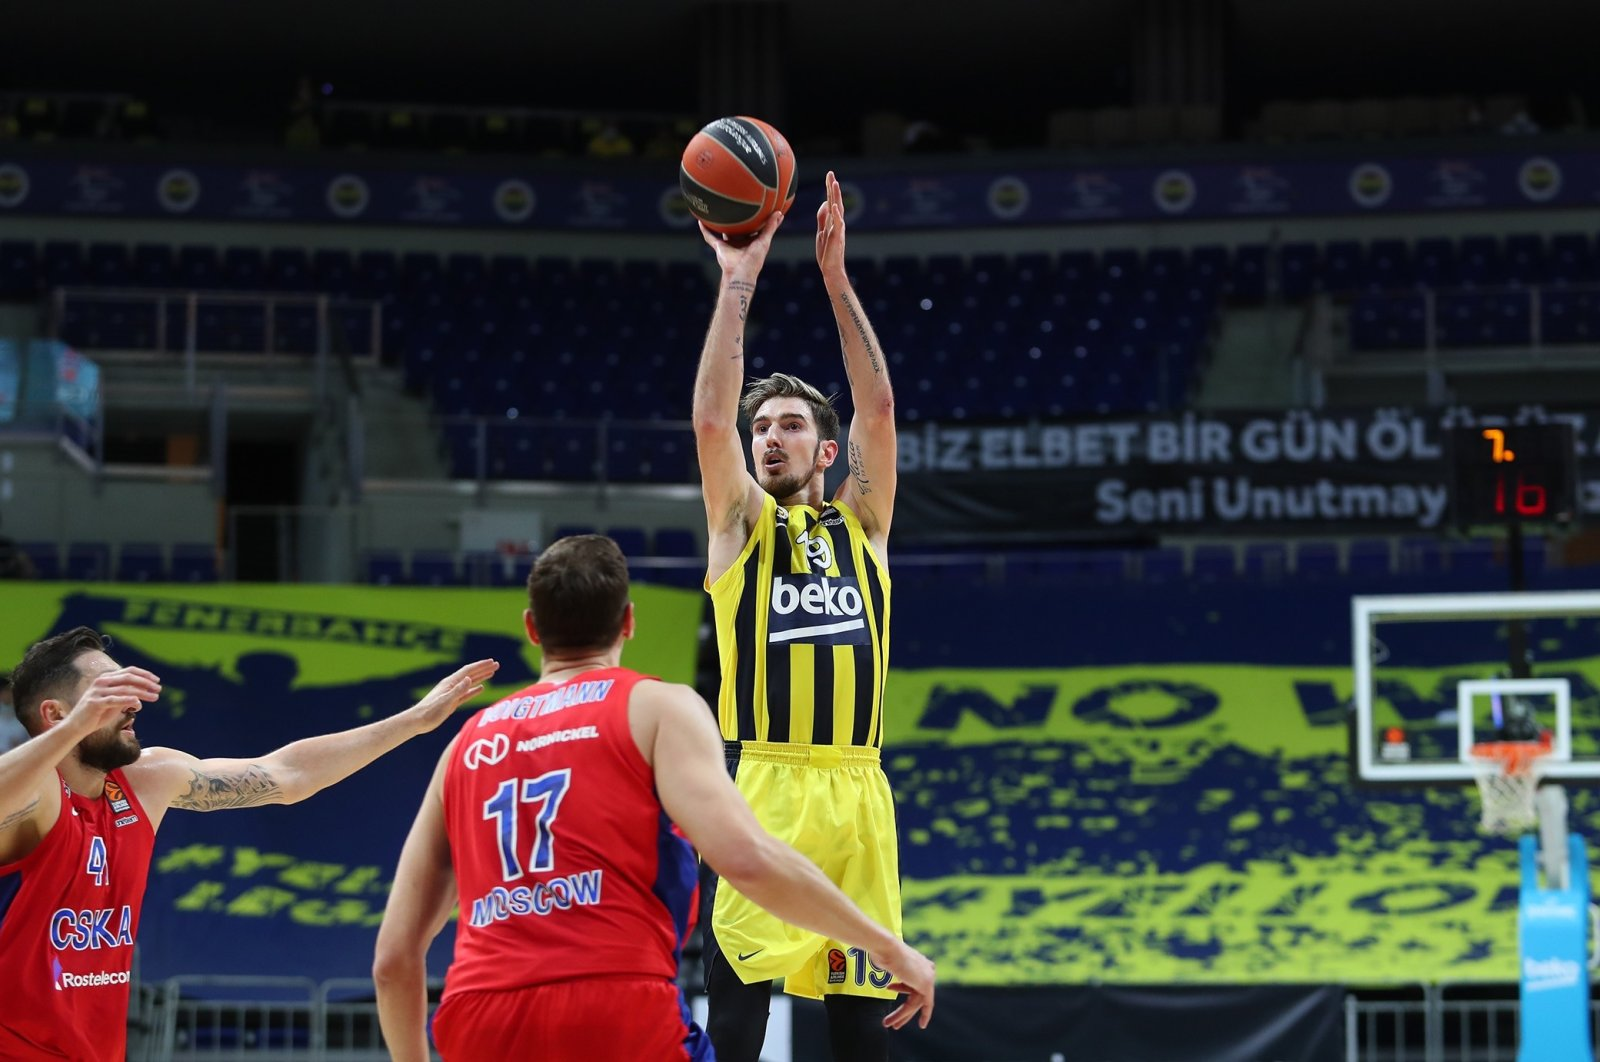 Fenerbahçe's French guard Nando De Colo (R) shoots during a game against CSKA Moscow at Ülker Sports Arena, Istanbul, Turkey, April 28, 2021. (IHA Photo)